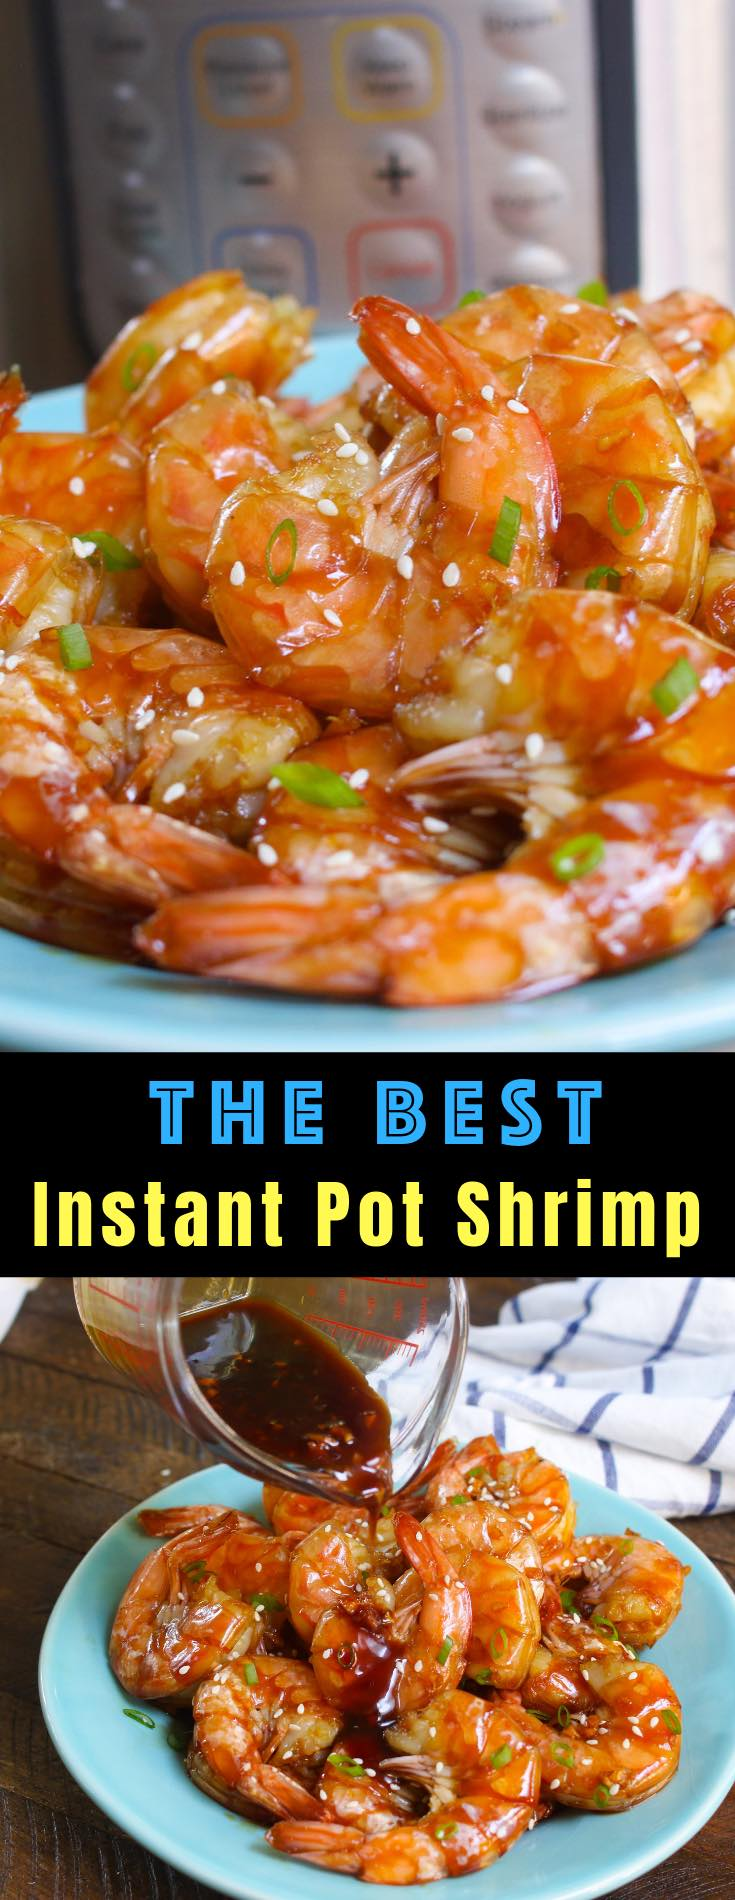 Instant Pot Shrimp with a delicious honey garlic sauce for an easy weeknight dinner or appetizer that's ready in just 15 minutes